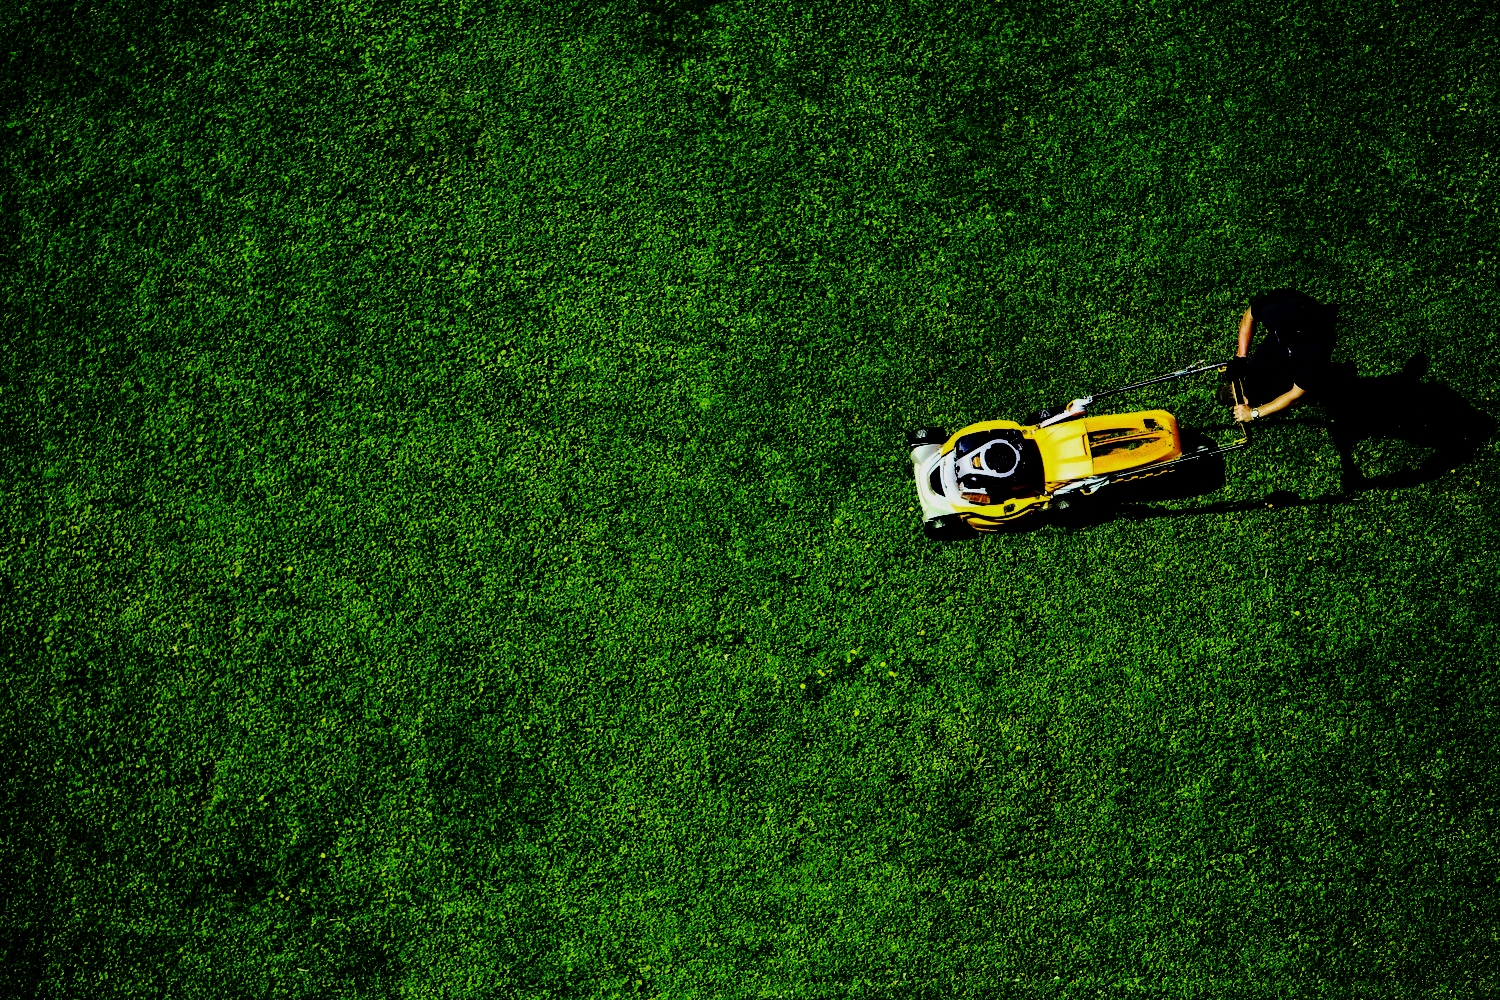 AIRMOW   Being last to market was used as a strong  newshook for this on-demand lawn mowing service. We highlighted Airmow's world first satellite technology as the necessary innovation to make it happen.  B2B press saw contractor registrations exceed client expectations by 250%.